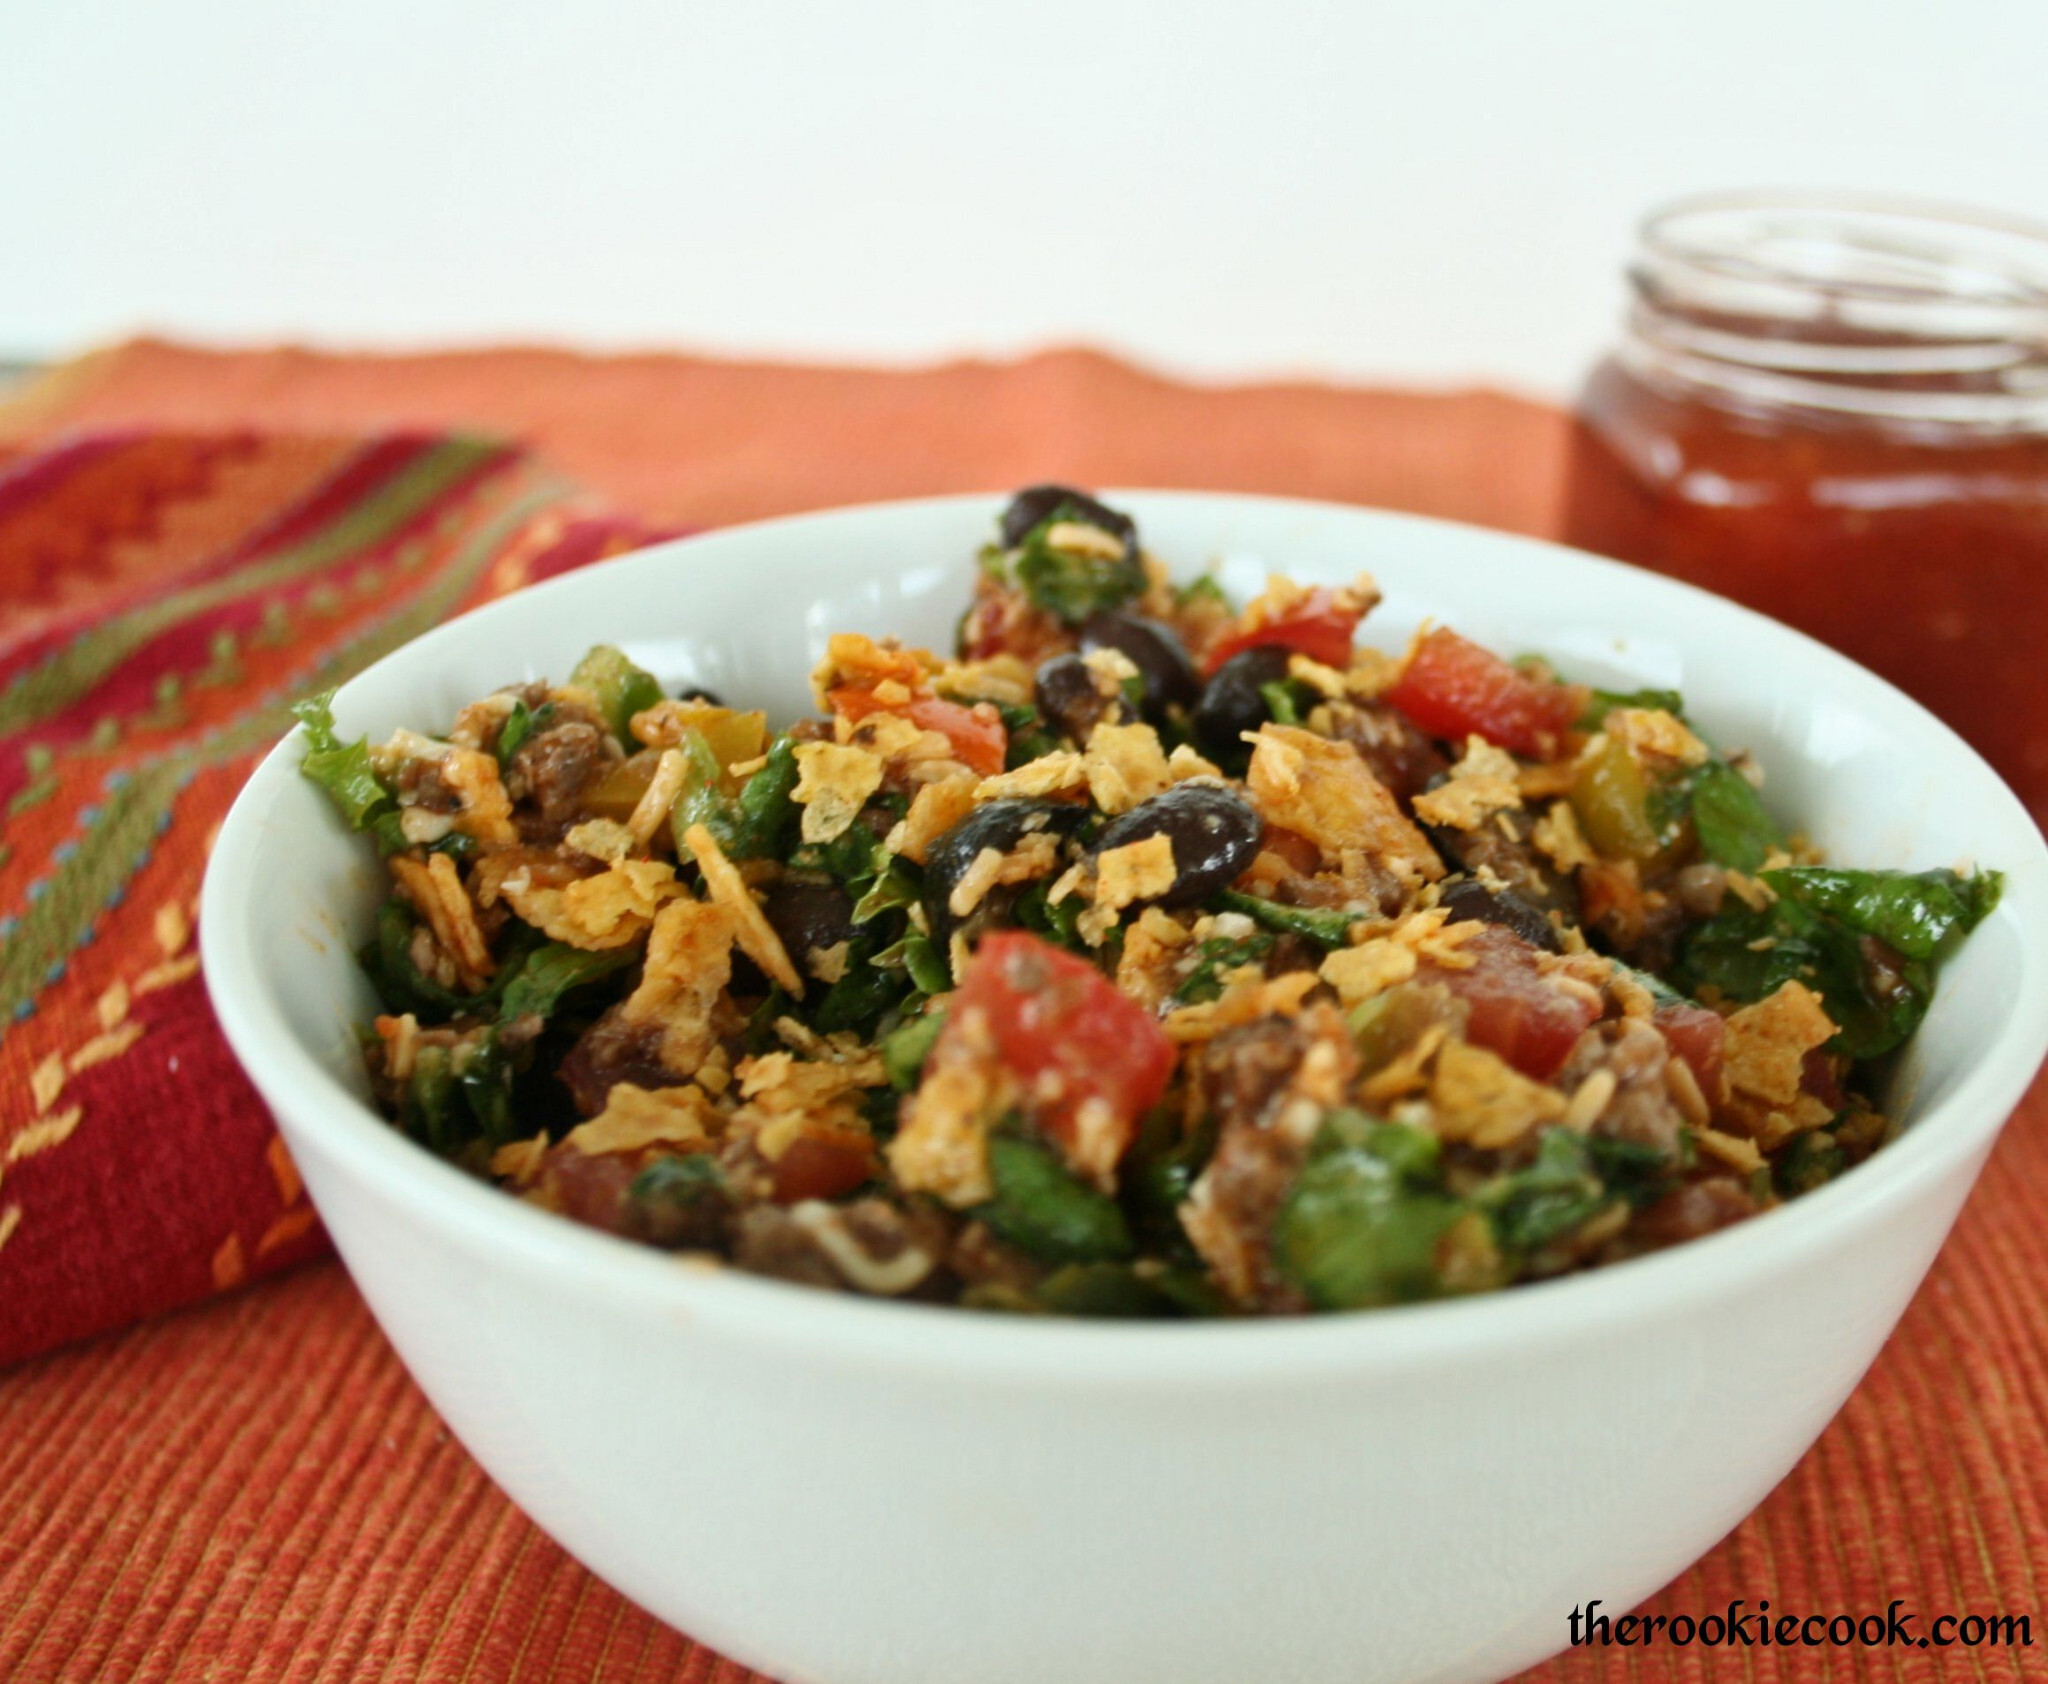 Chopped Fiesta Taco Salad with Homemade Catalina Dressing